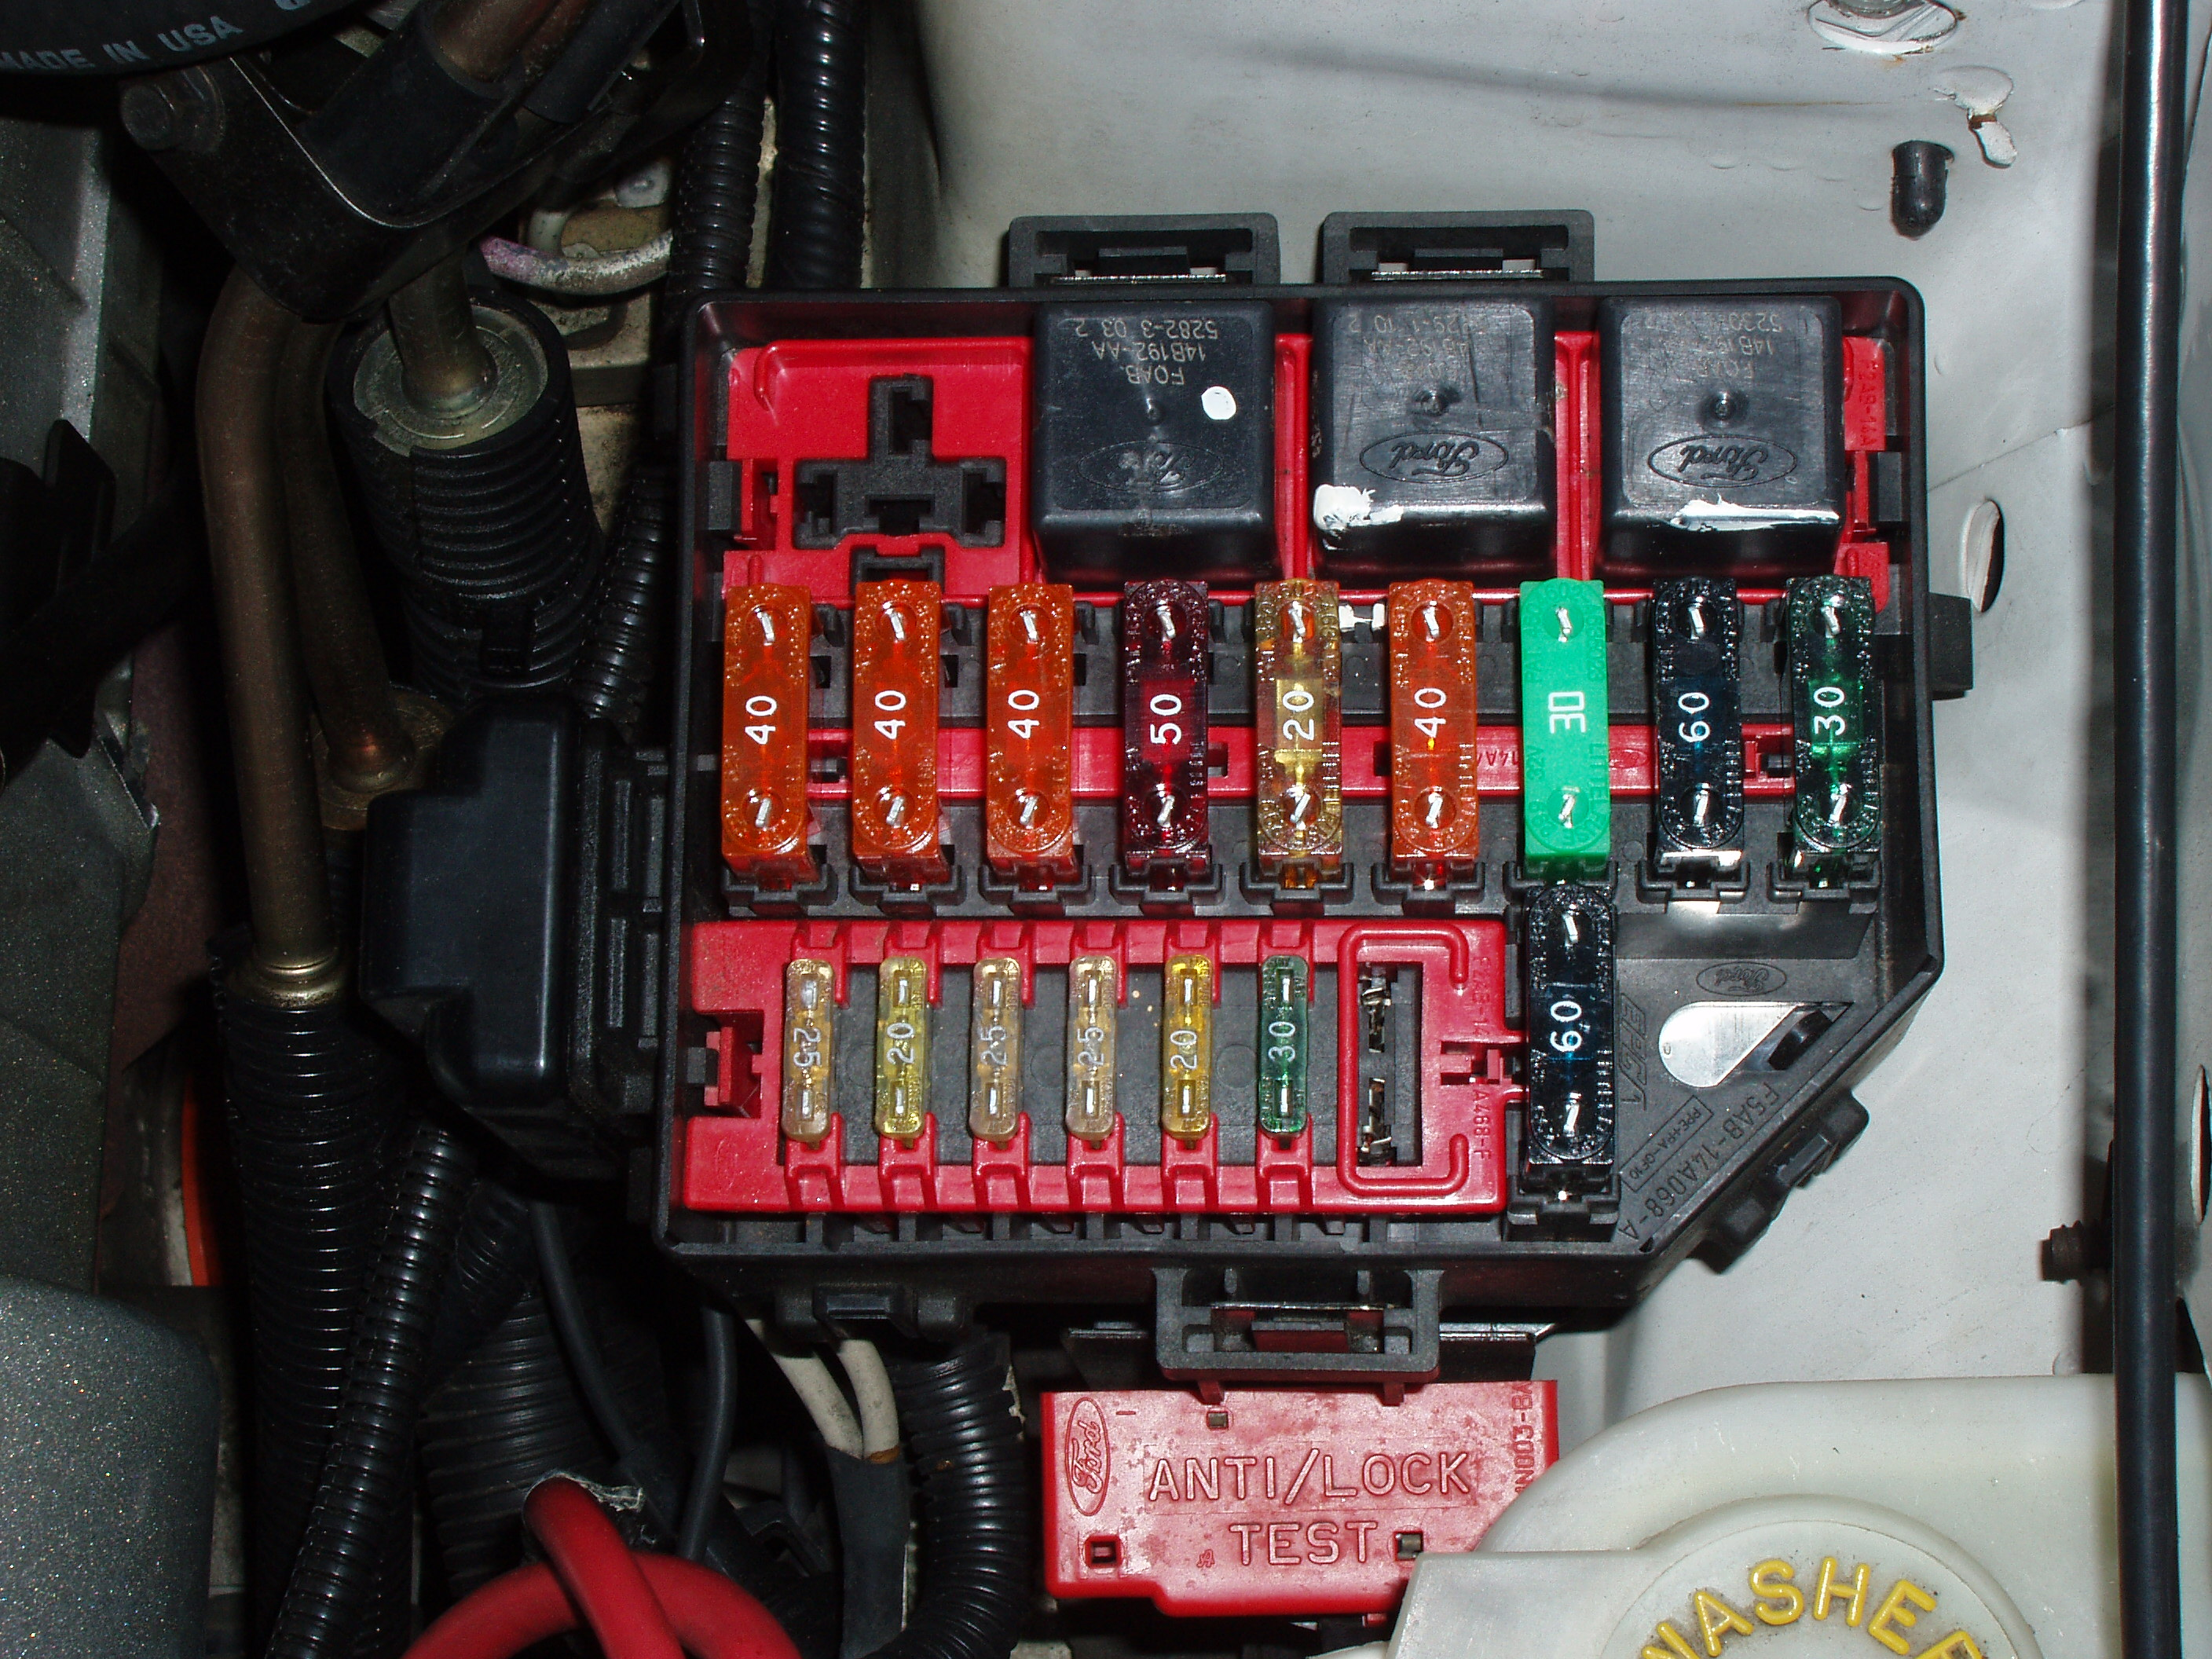 2004 Mustang Fuse Box Location List Of Schematic Circuit Diagram 2003 Neon Ford Gt 1996 To 2014 Why Is Abs Light On Mustangforums Rh Com Engine Layout